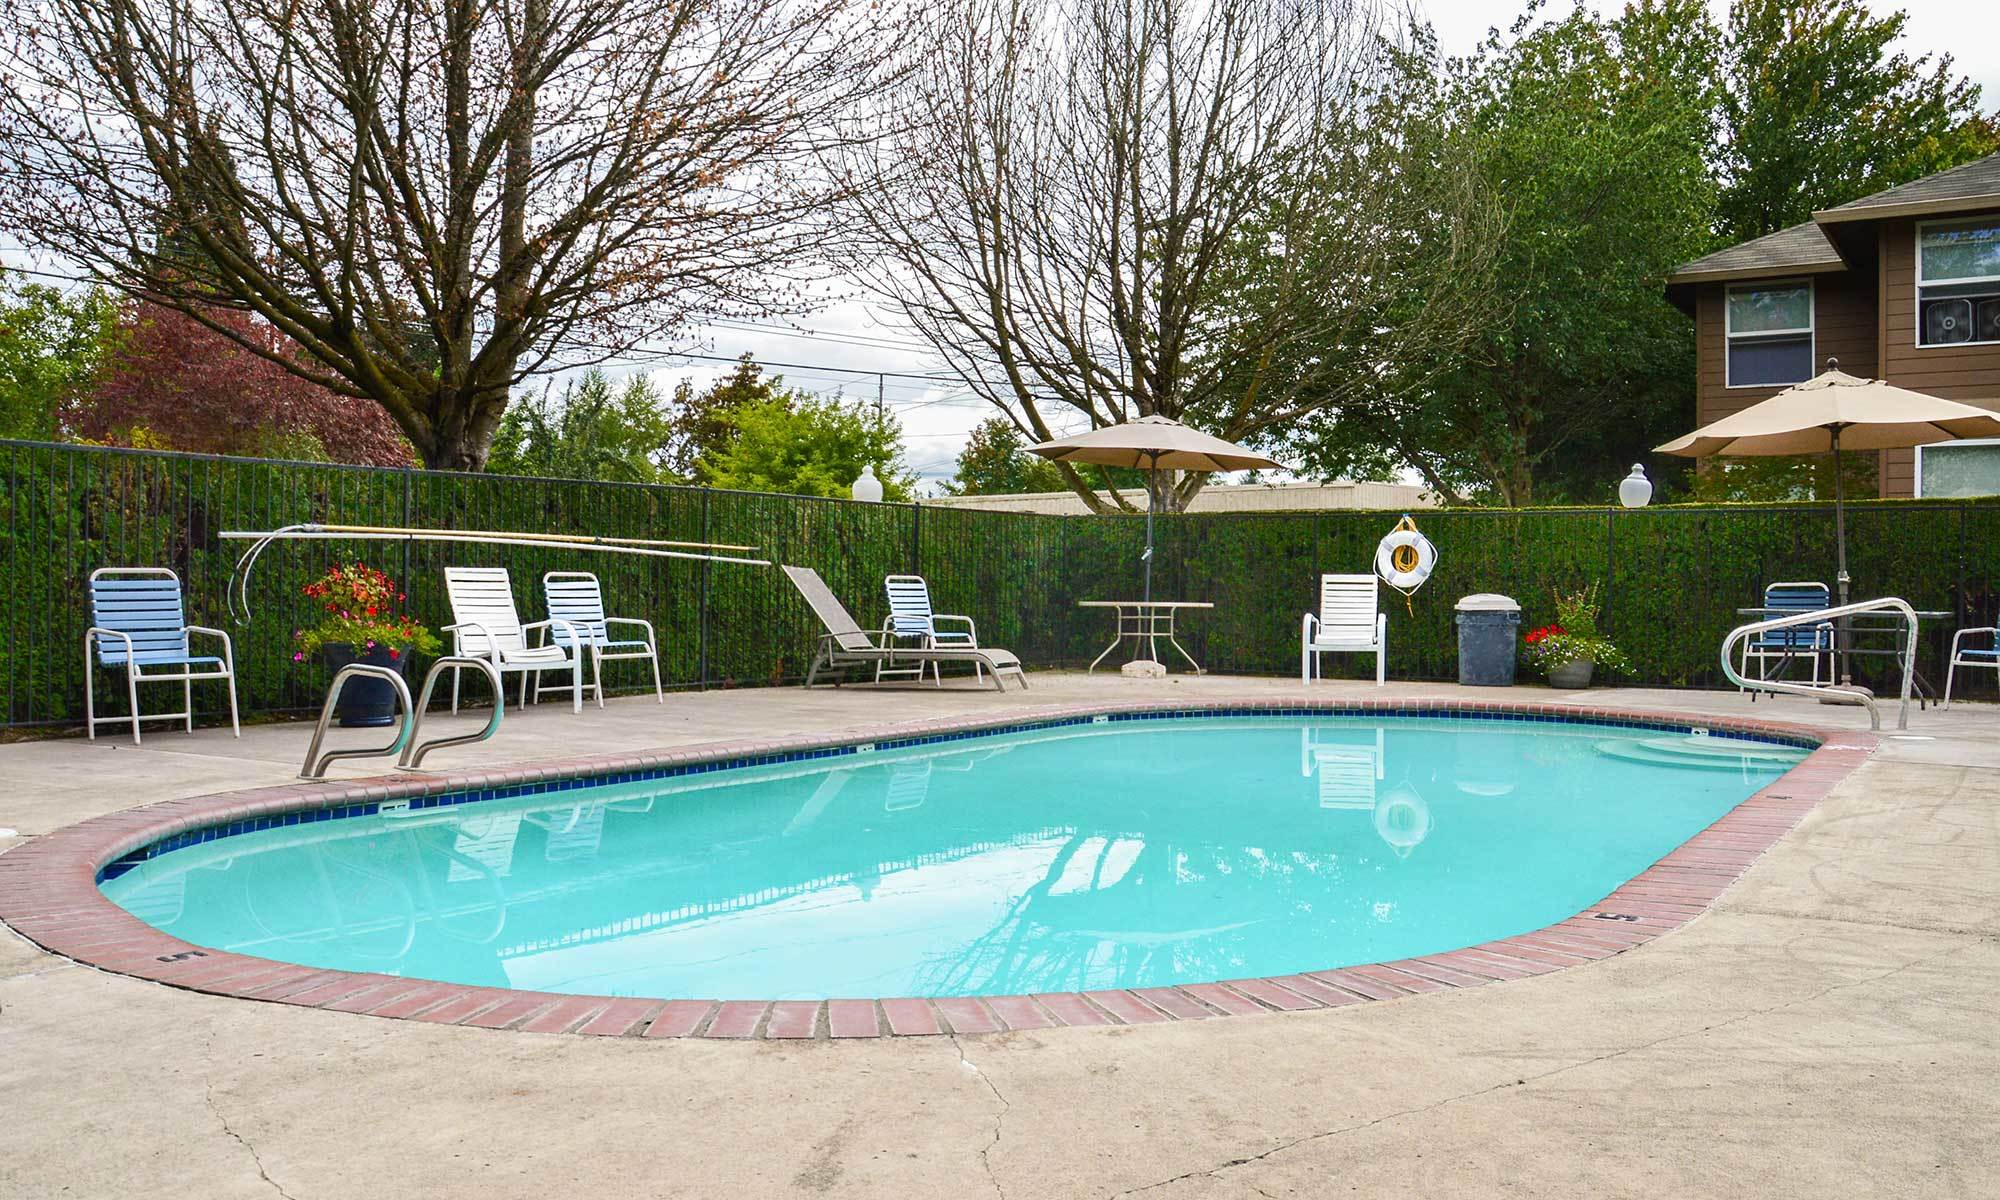 Learn more about our apartment community at Village Place in Clackamas.